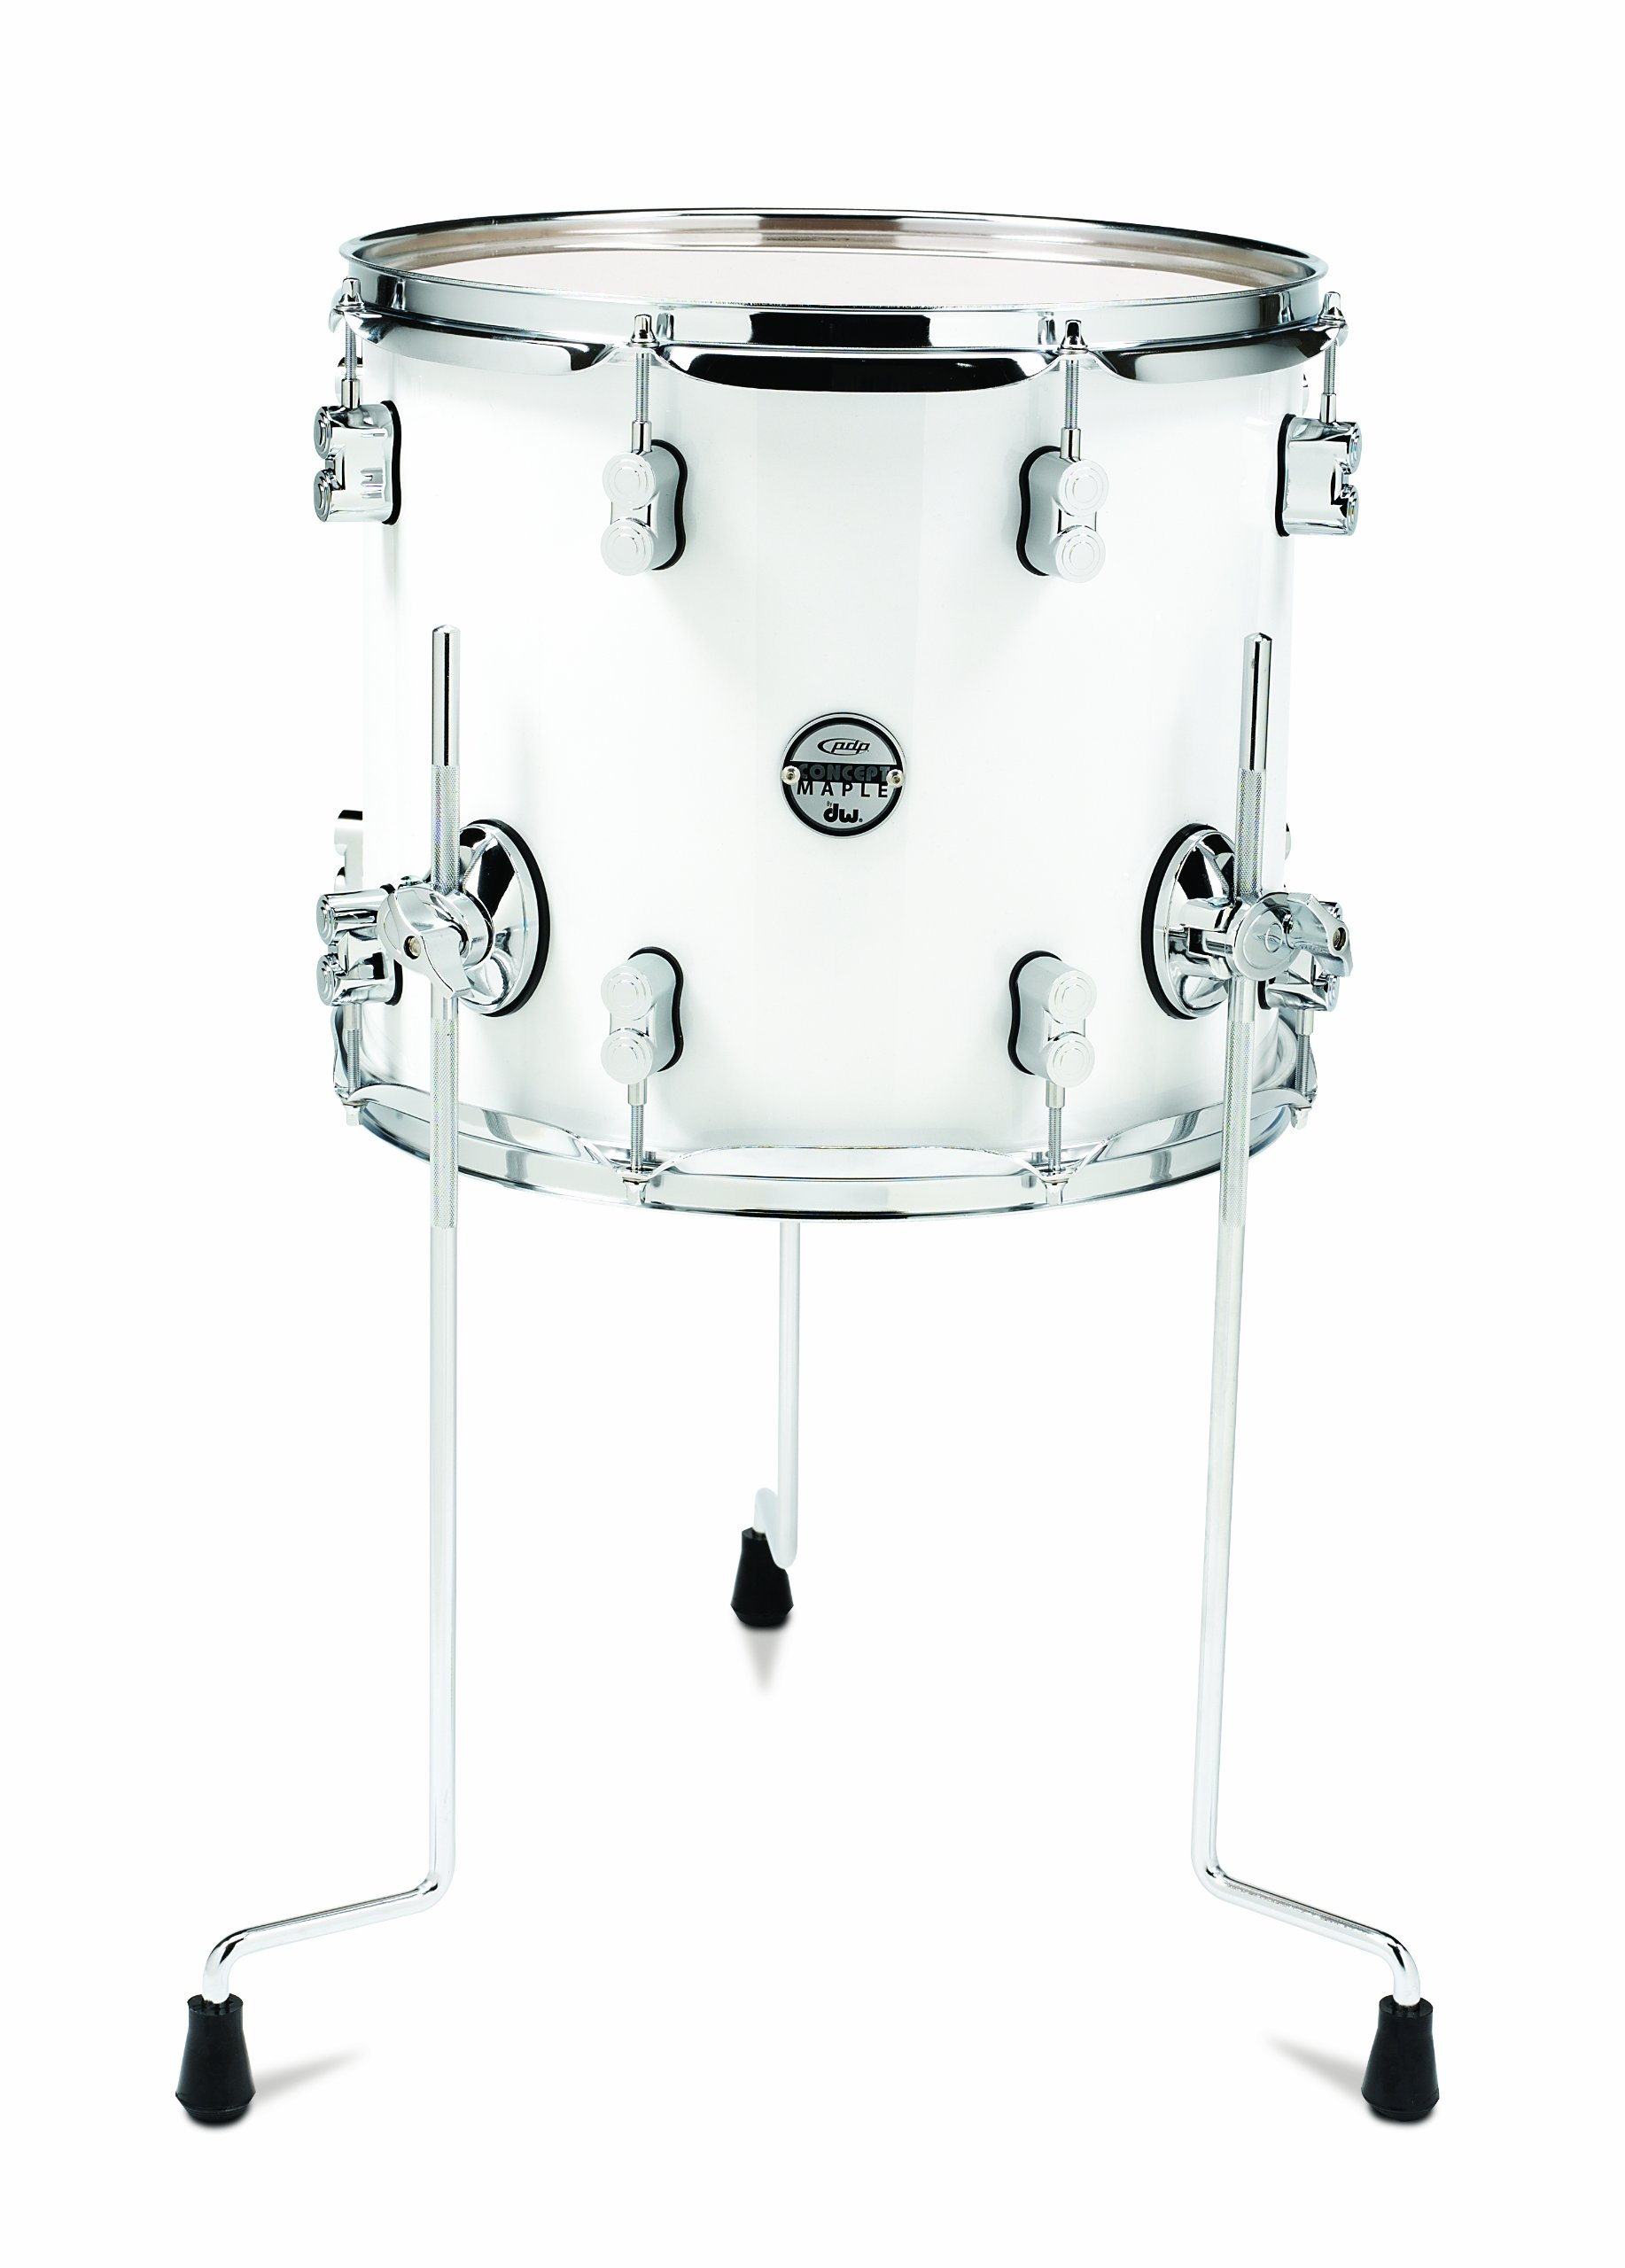 Pacific Drums PDCM1214TTPW 12 x 14 Inches Floor Tom with Chrome Hardware - Pearlescent White